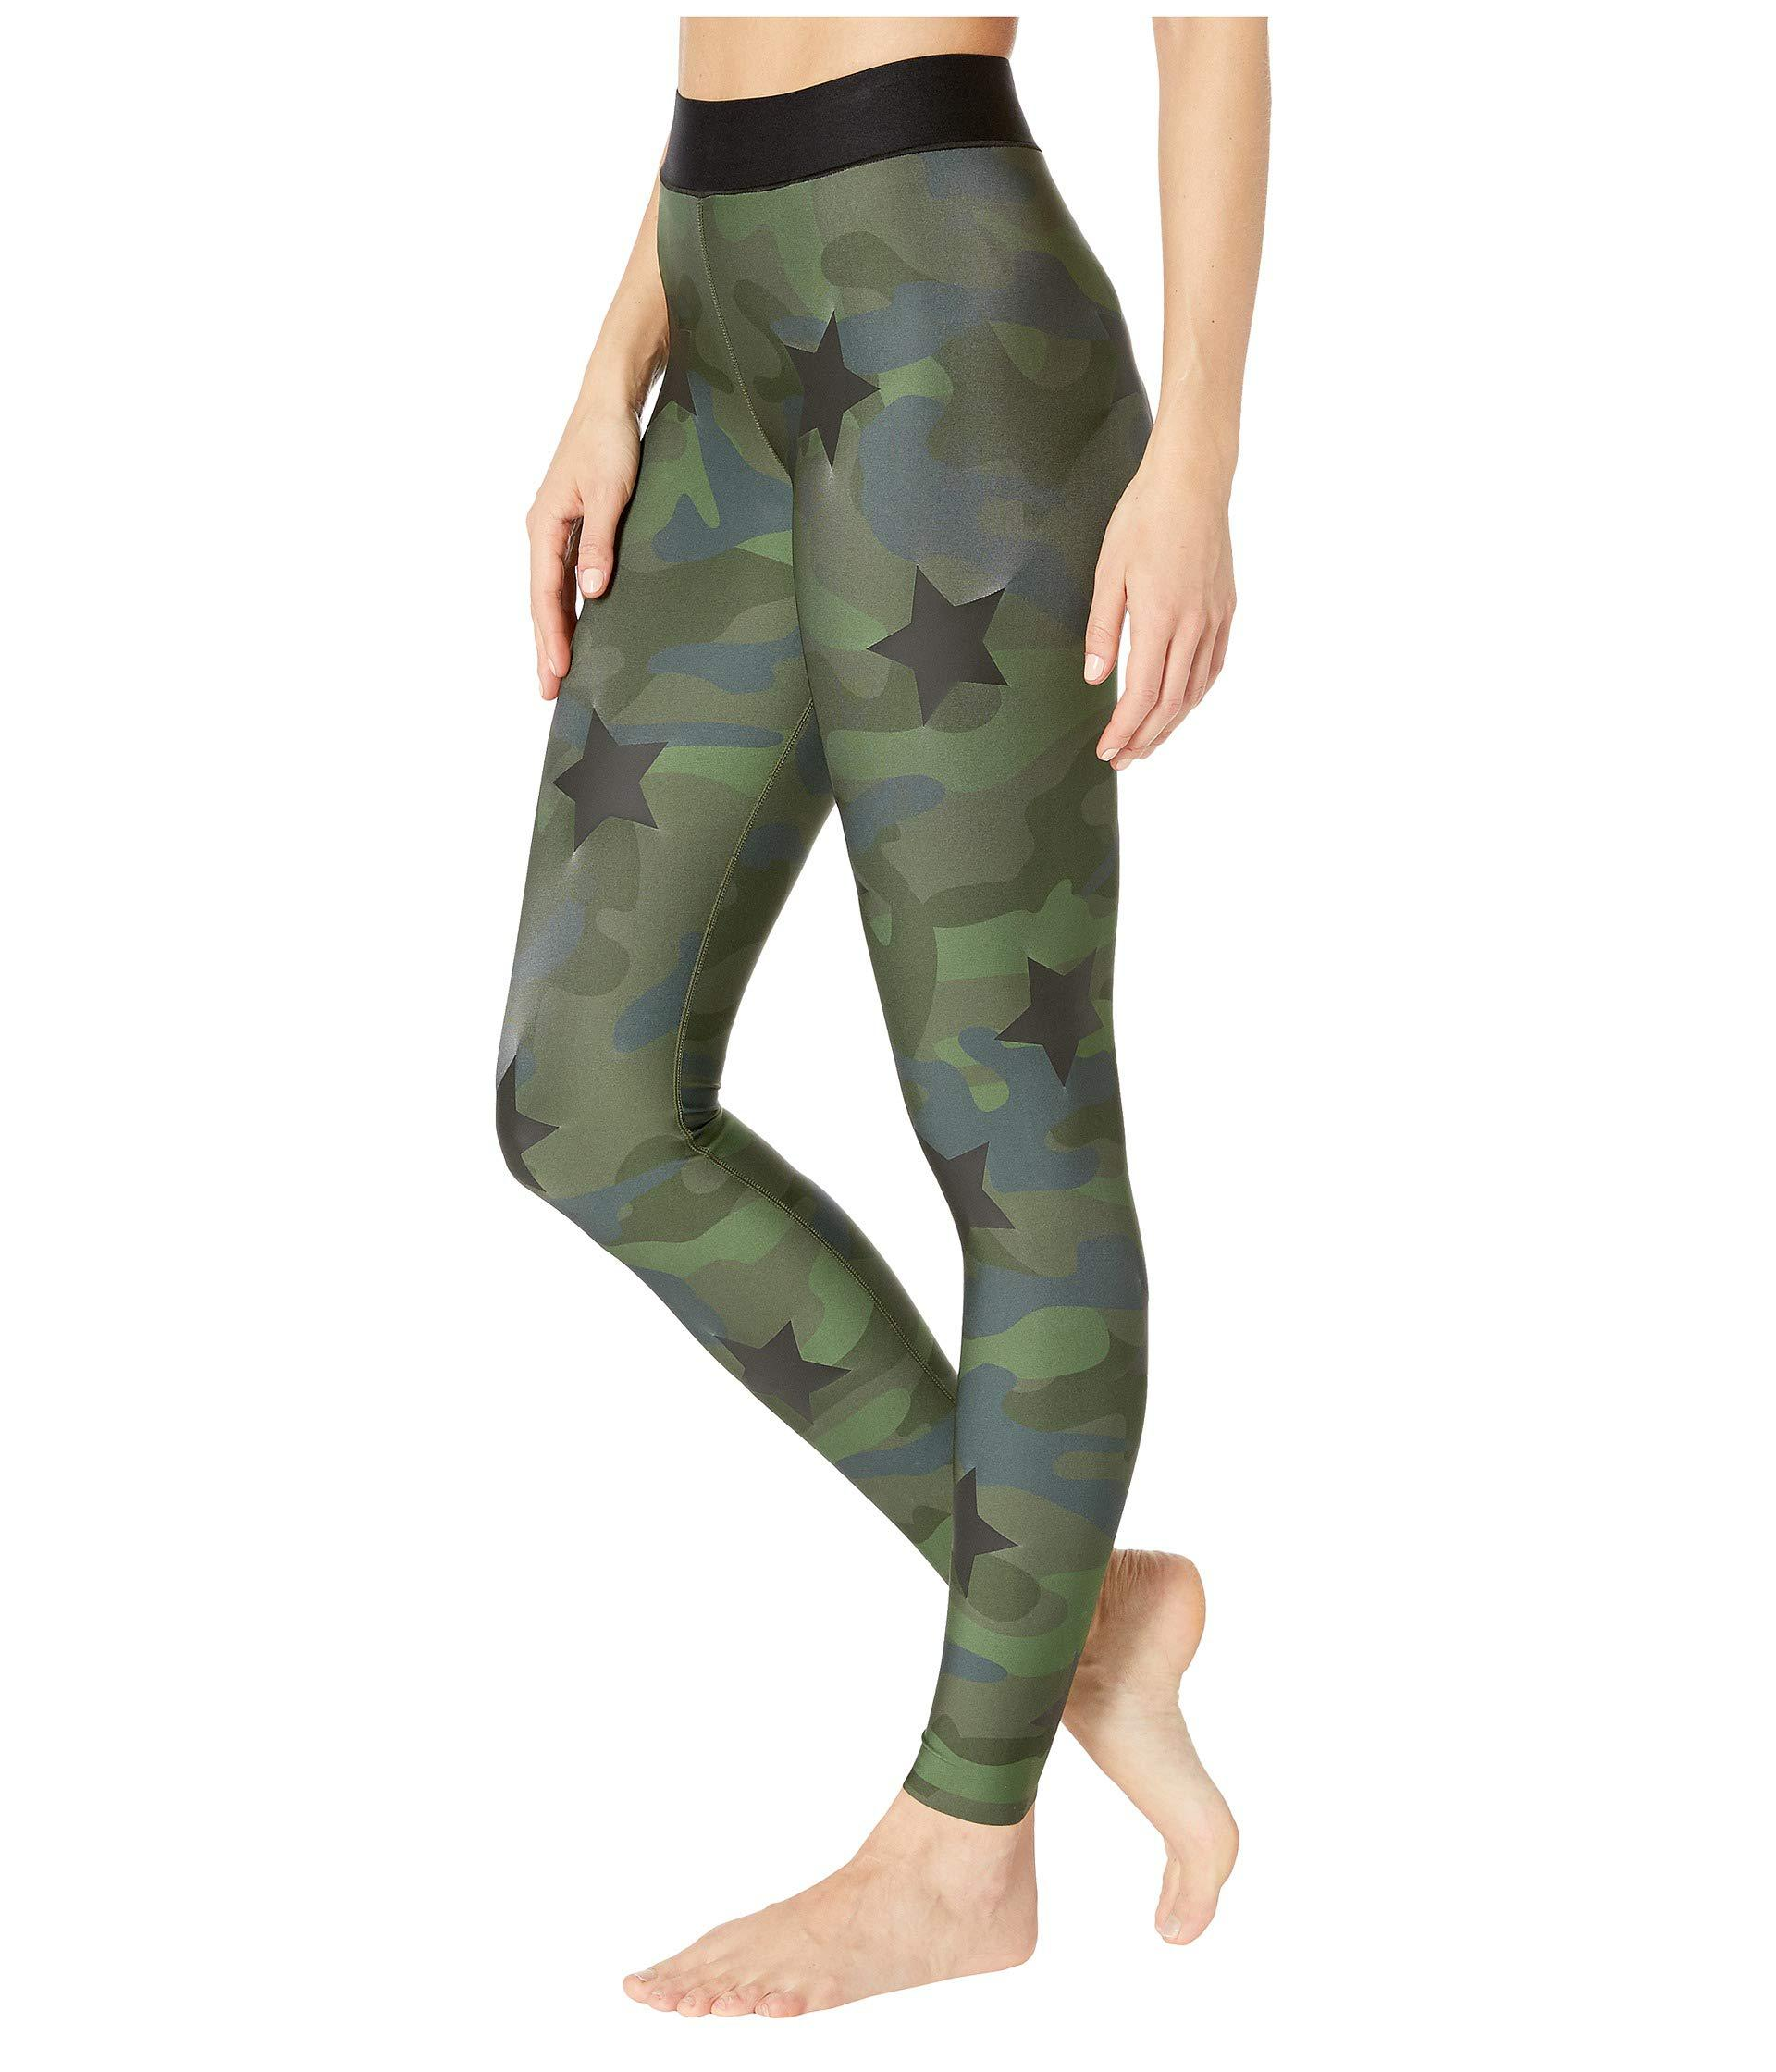 fe4f0658a8387 Lyst - Ultracor Ultra Silk Knockout Legging in Green